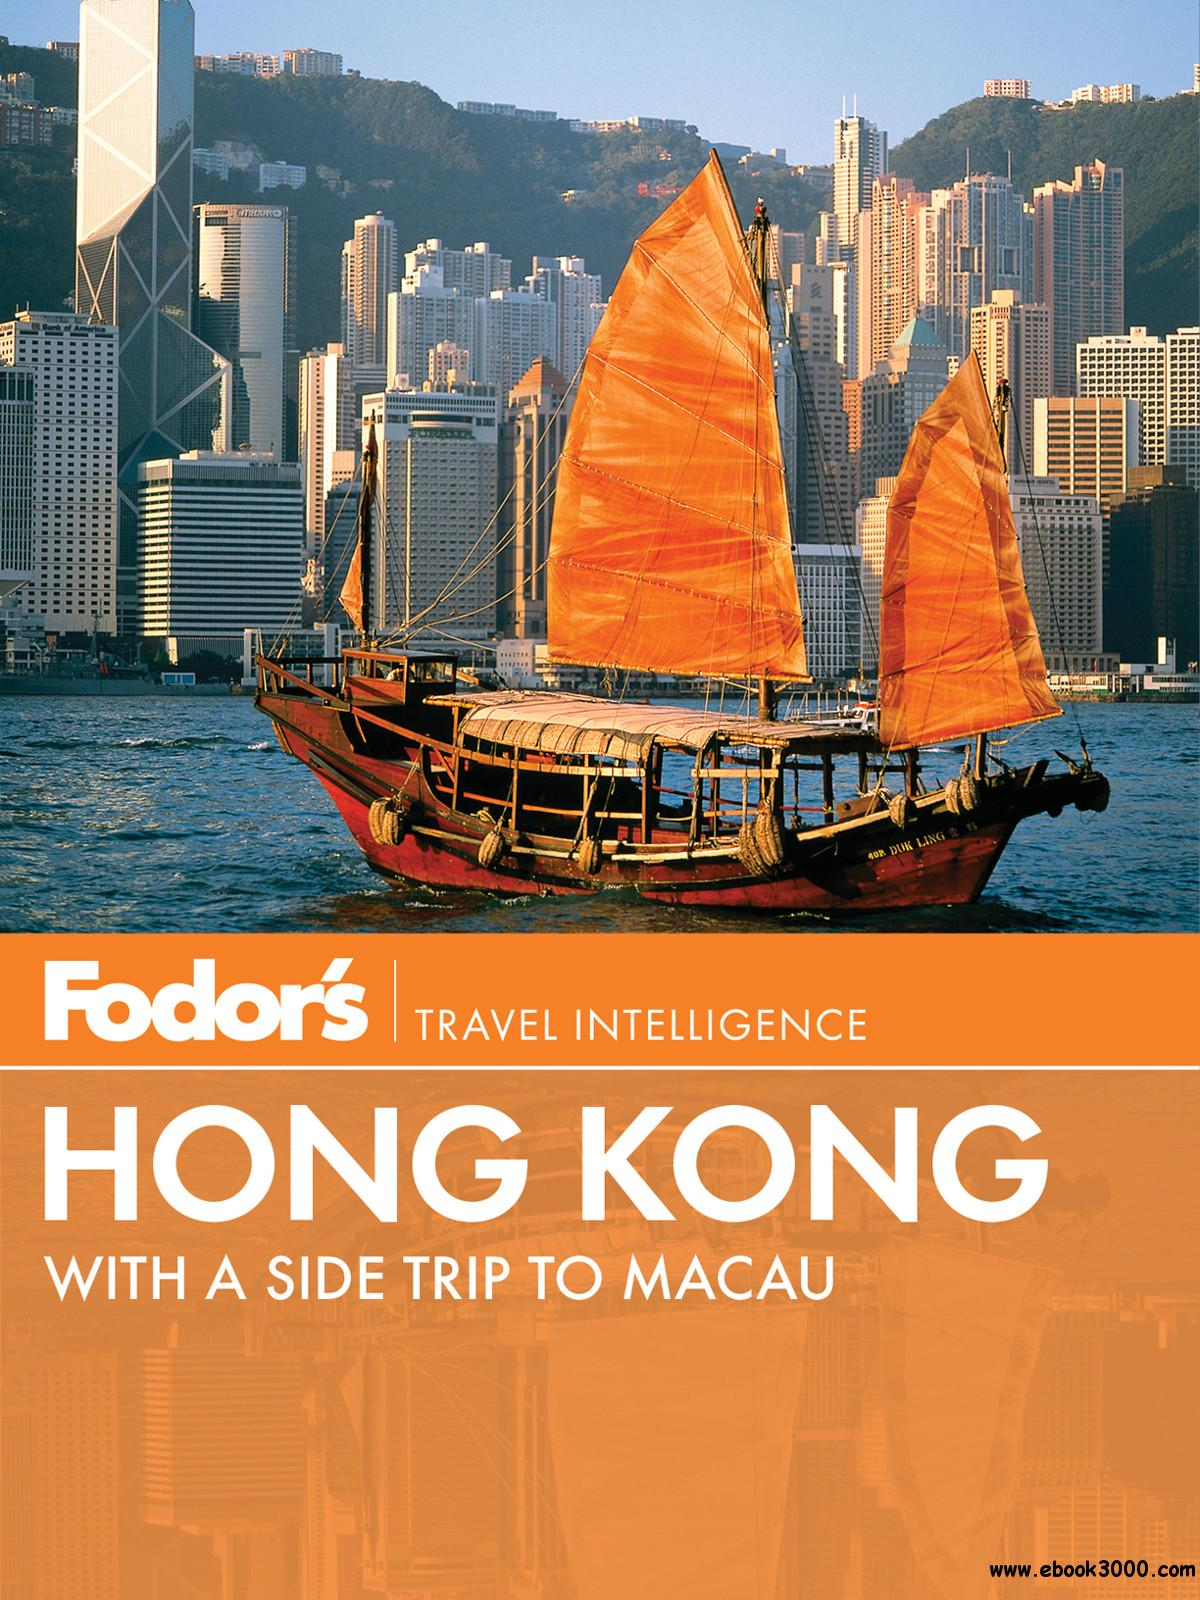 Fodor's Hong Kong with a Side Trip to Macau free download